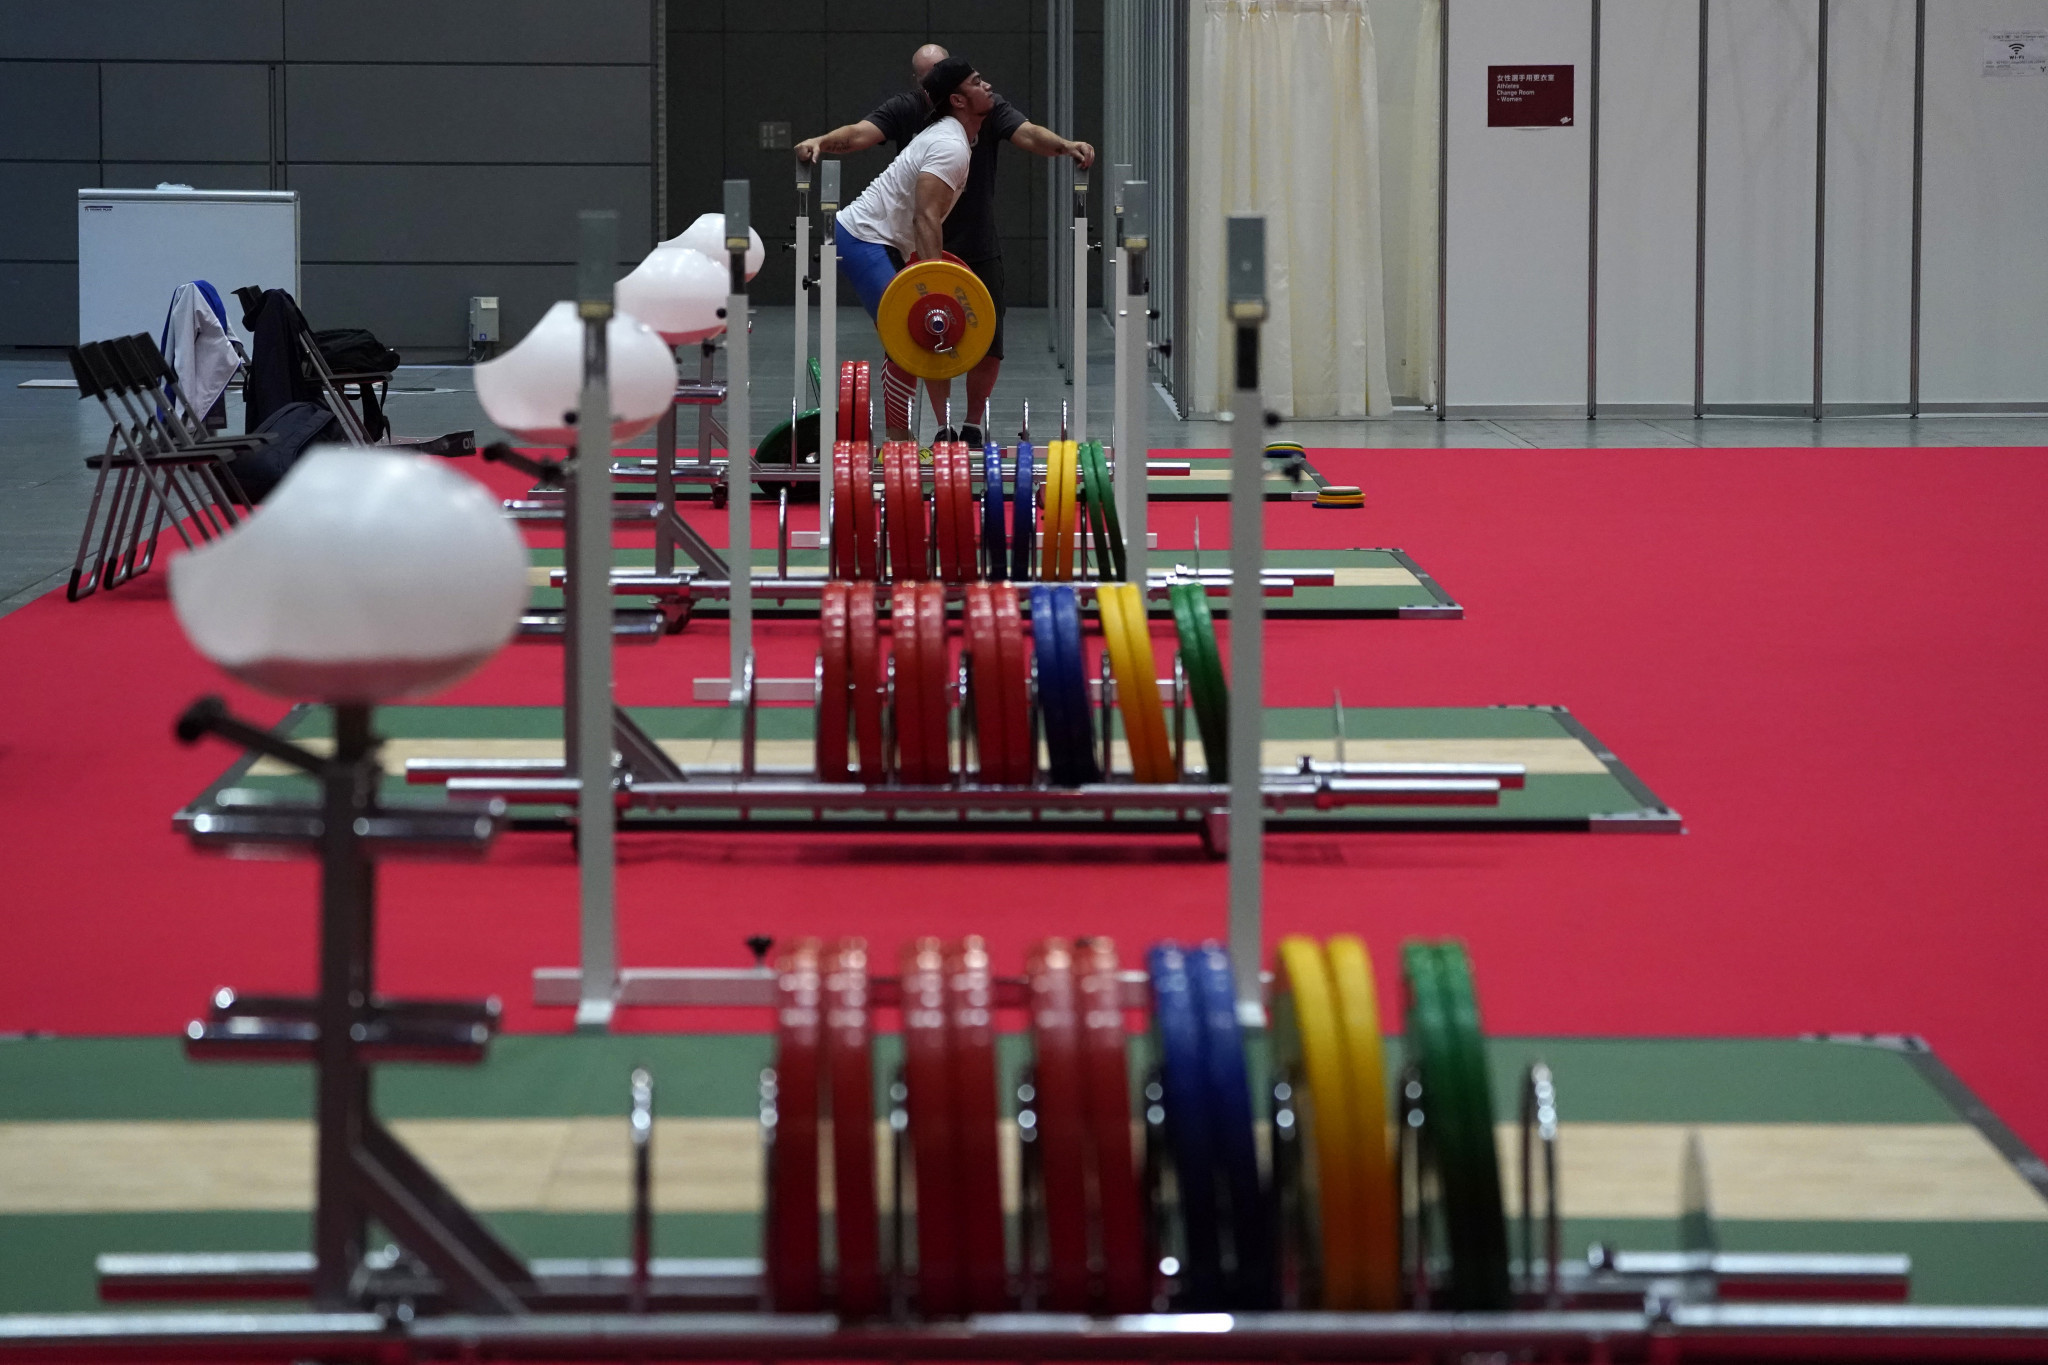 Weightlifting manager for Tokyo 2020 says IWF is risking sport's future by opting for October elections